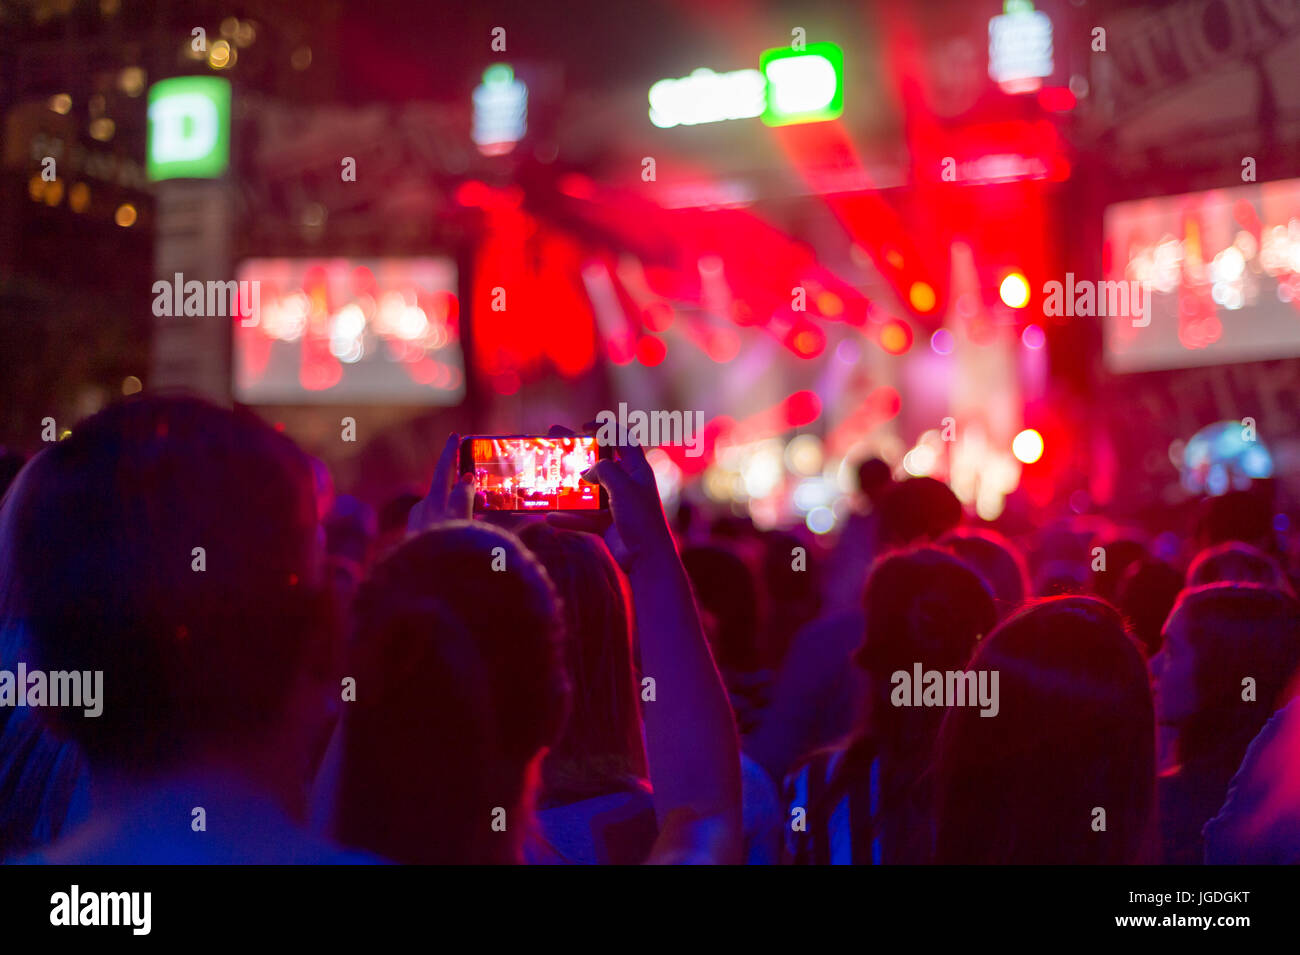 Montreal, 4 July 2017: blurred picture of audience at concert, with a girl filming the show with smart phone - Stock Image